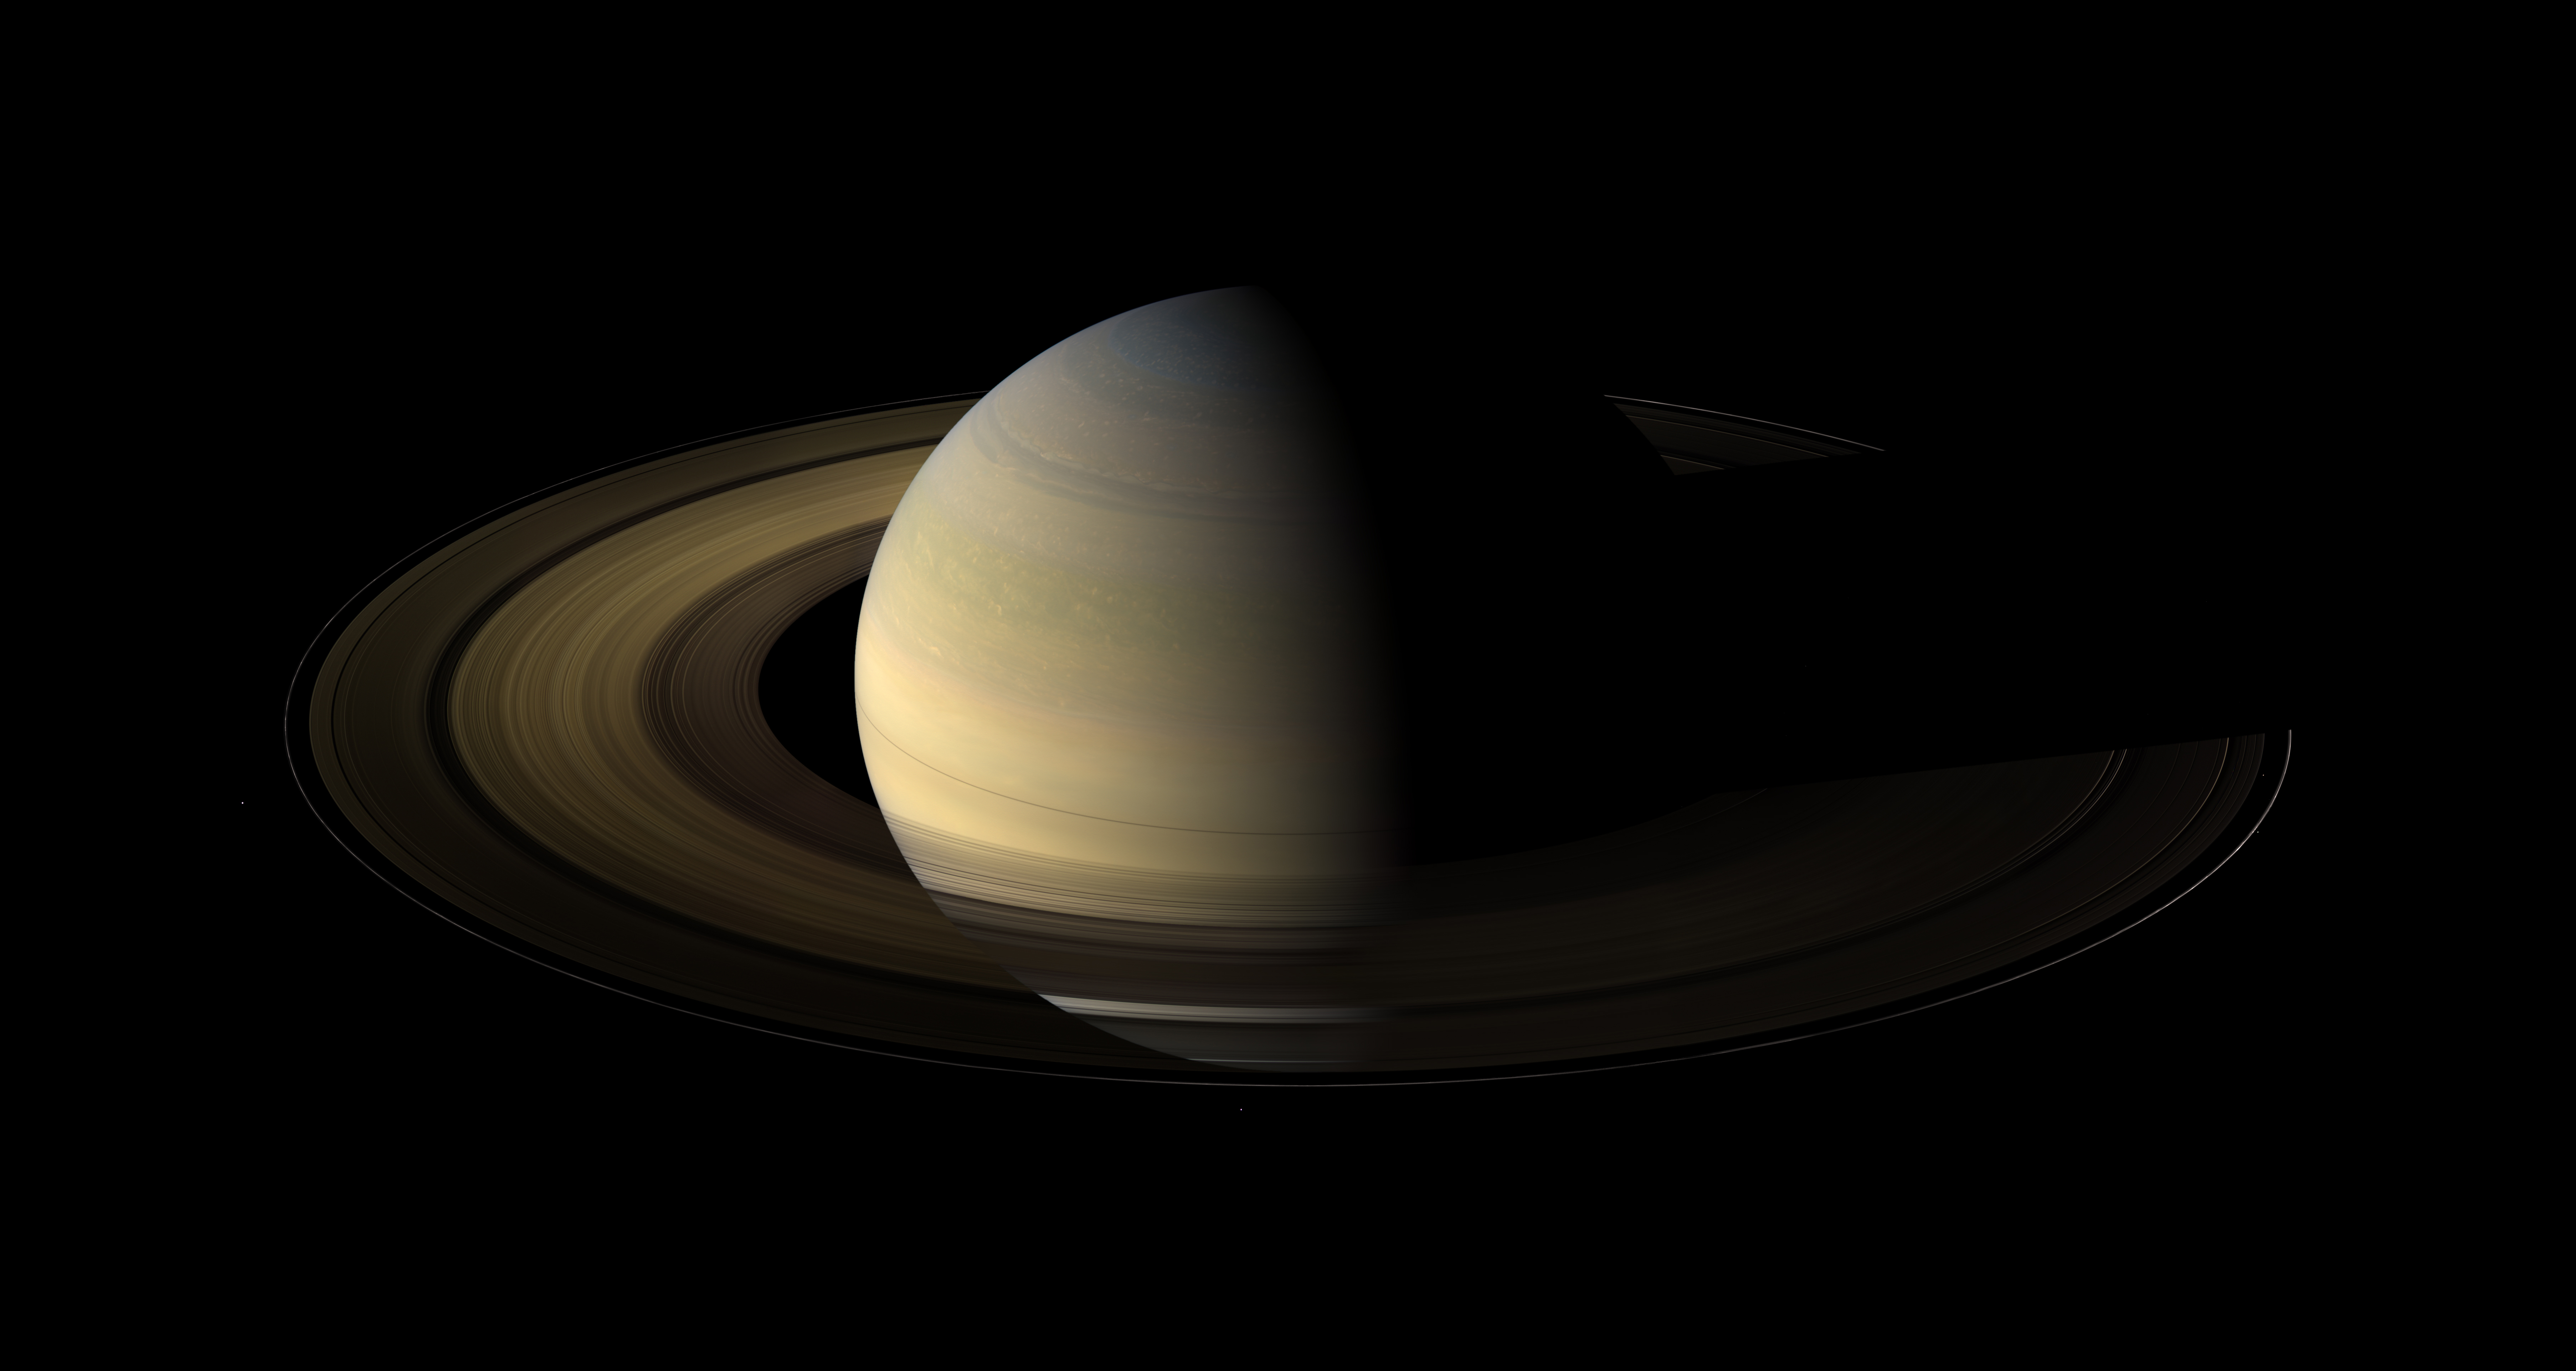 Saturn, its rings, and a few of its moons.jpg